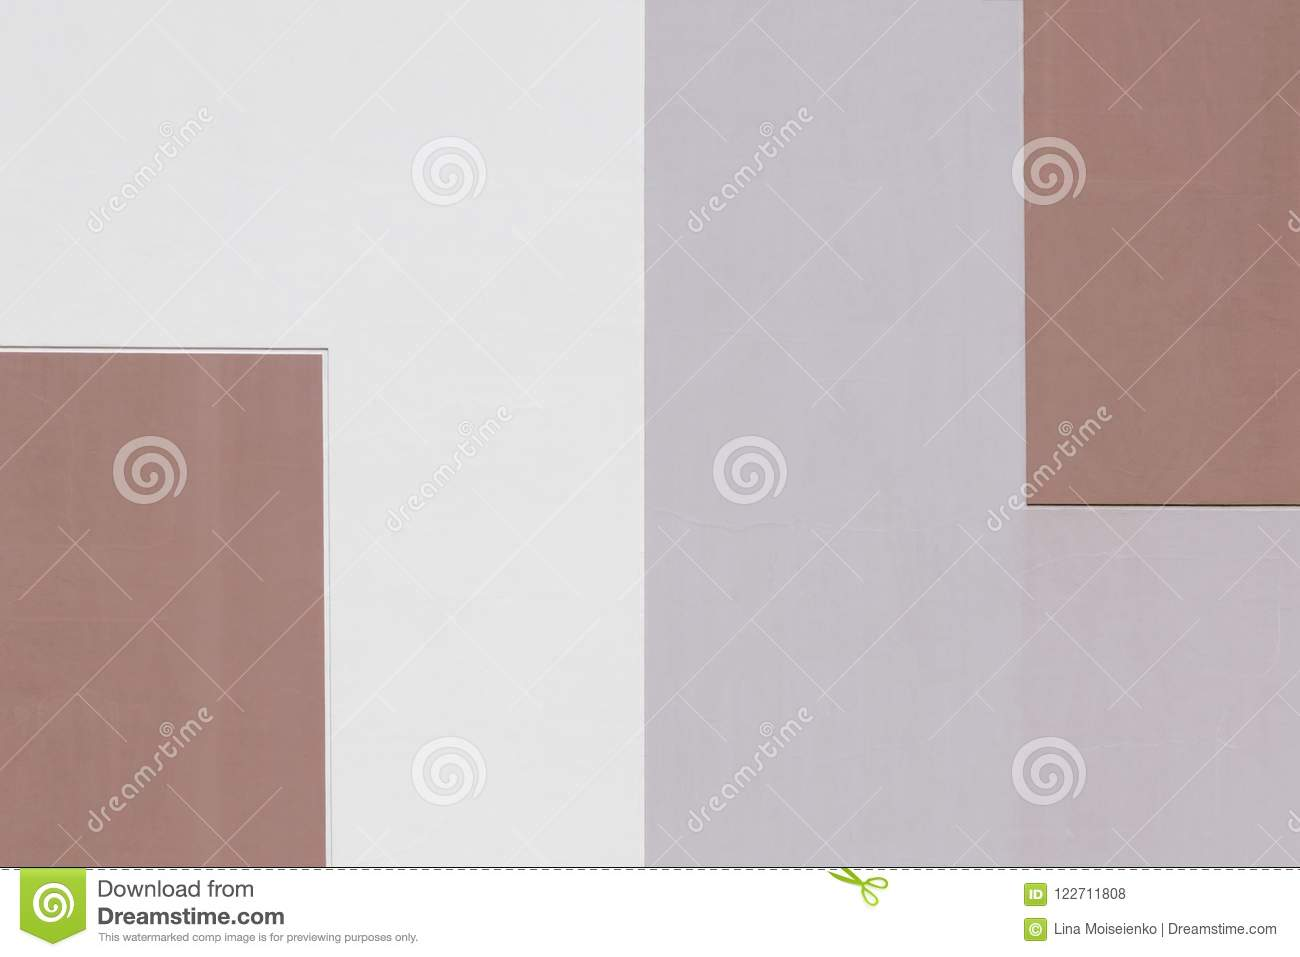 Abstract geometric background of pastel tones, divided into two parts